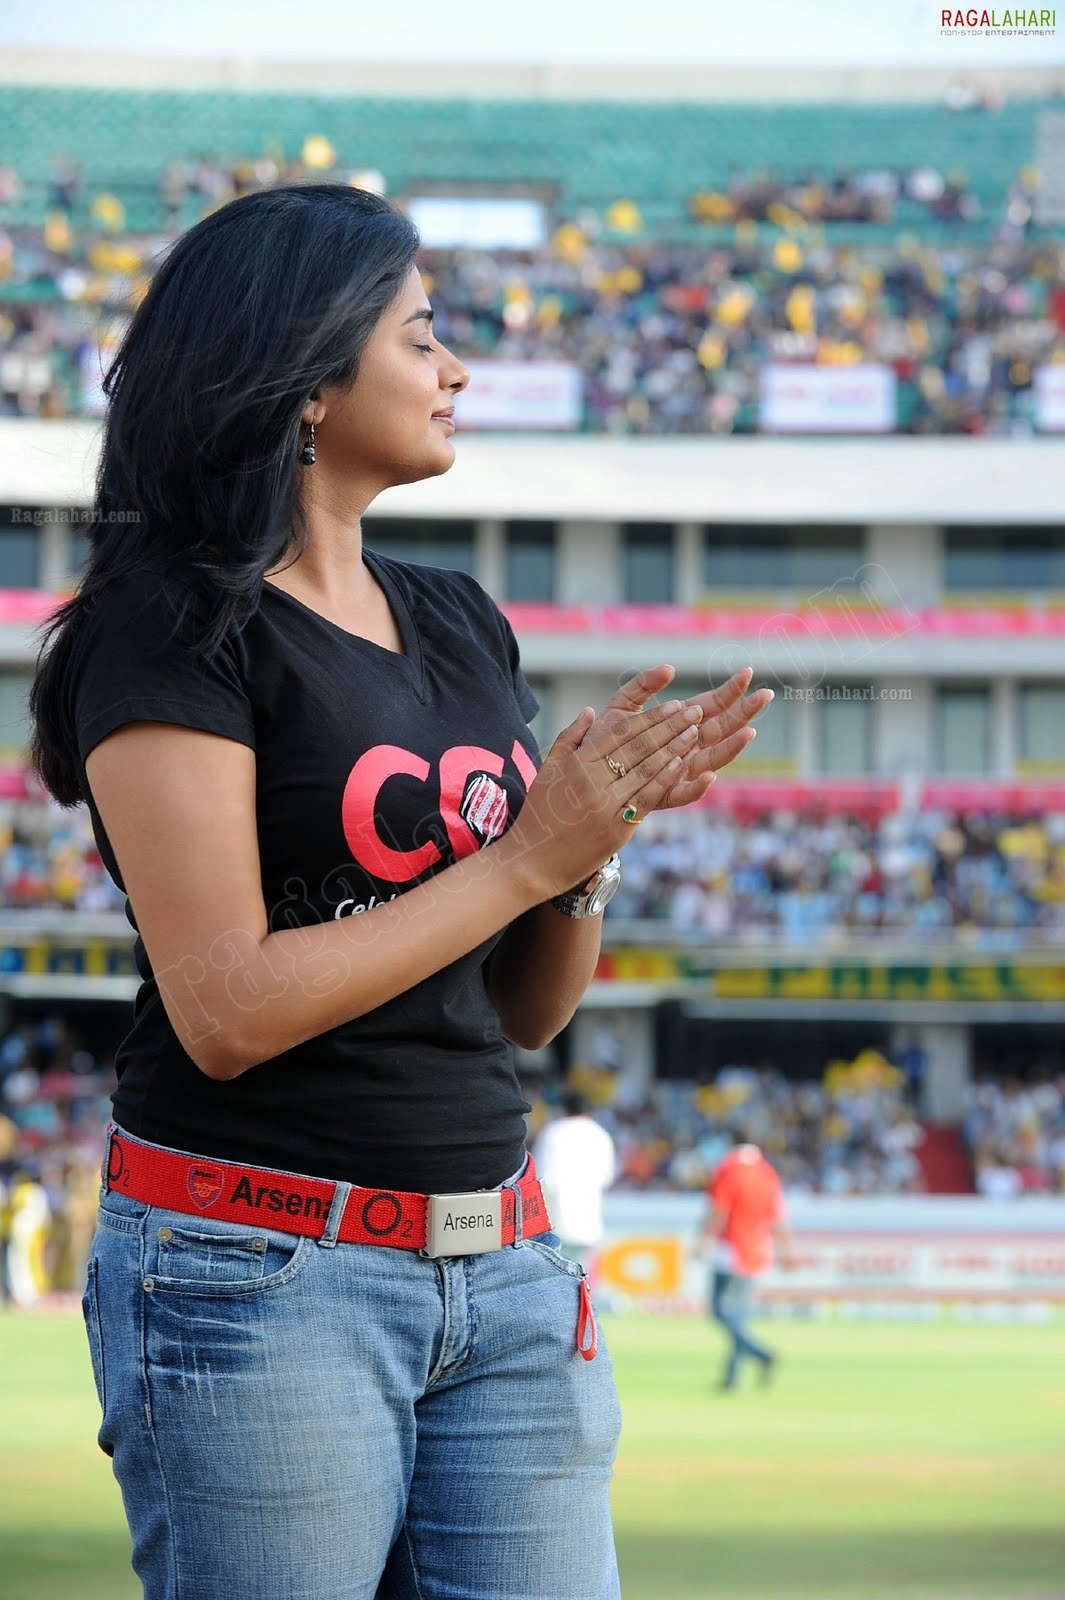 http://4.bp.blogspot.com/-cbKwuyo-gqo/TfoL9nuRvpI/AAAAAAAAIS4/4ptVwp40pz0/s1600/priyamani-high-resolution-celebrity-cricket-league8-0016_indian%2Bmasala_01indianmasala.blogspot.com.jpg